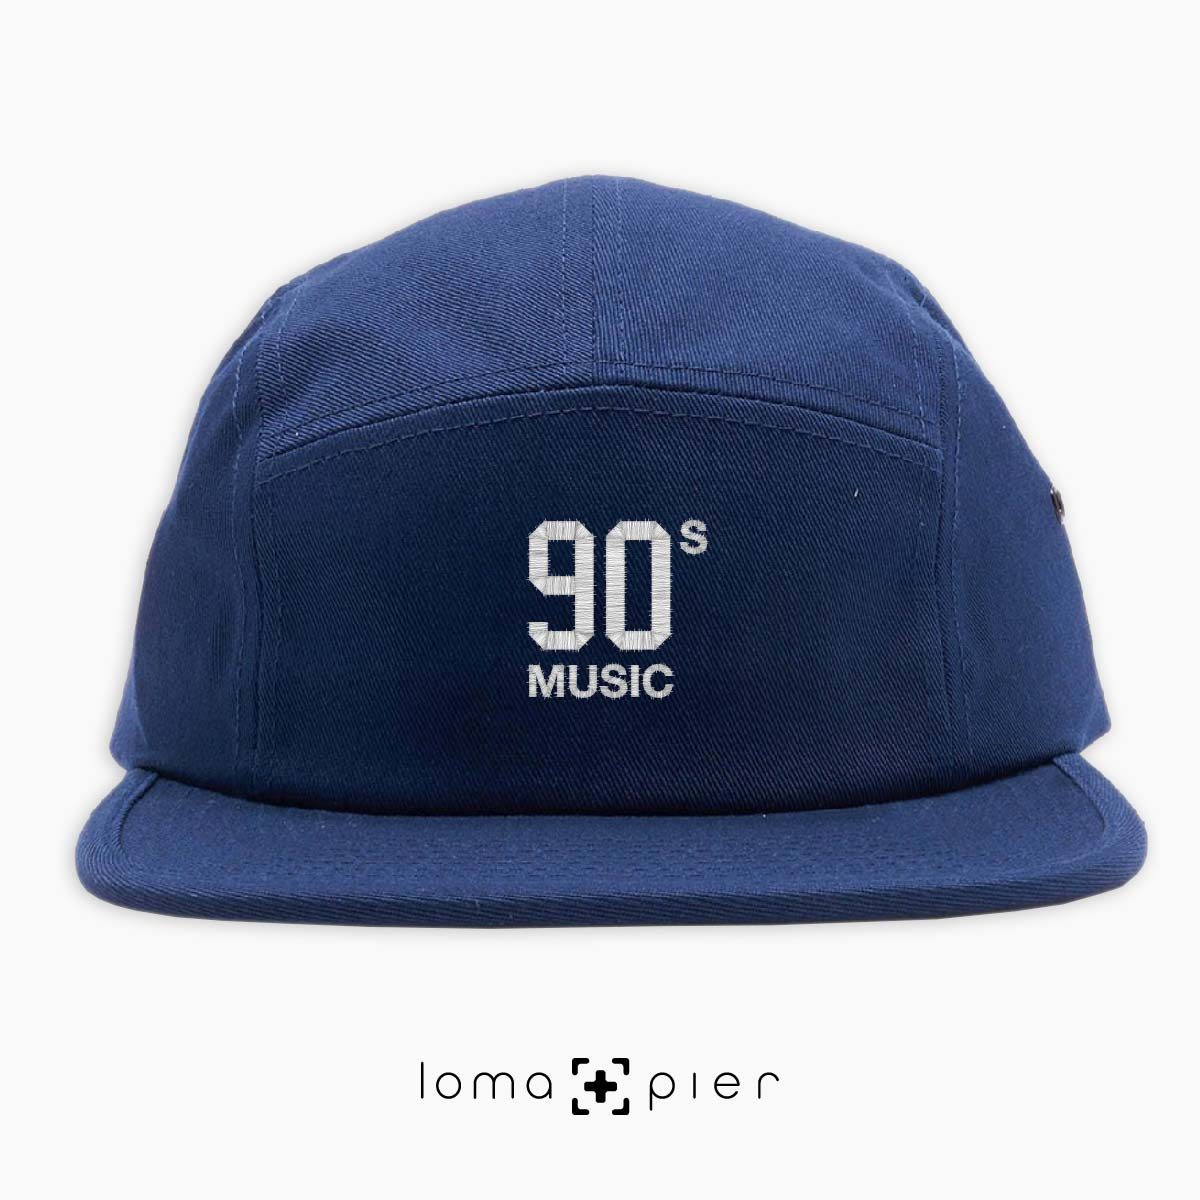 90's MUSIC typography embroidered on a navy blue cotton 5-panel hat with white thread by loma+pier hat store